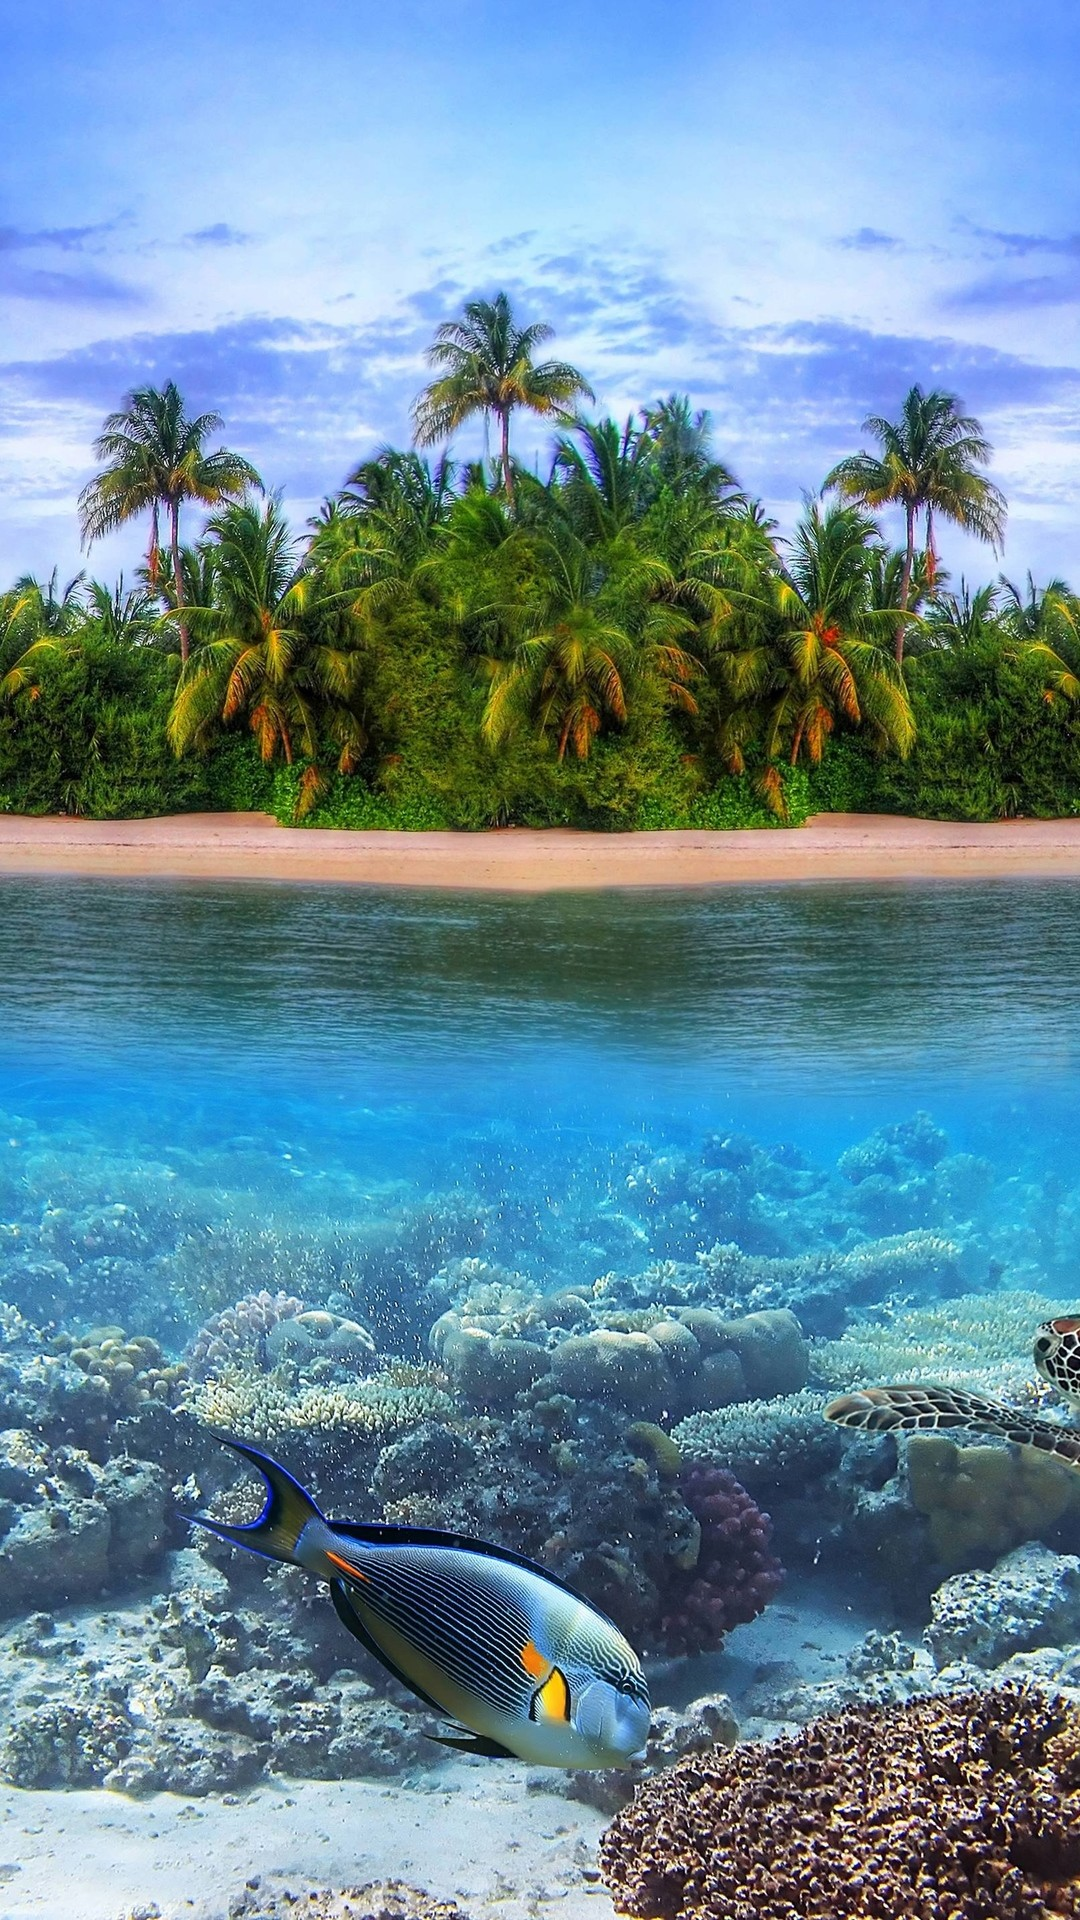 Tropical Island Wallpaper With Fish (49+ Images